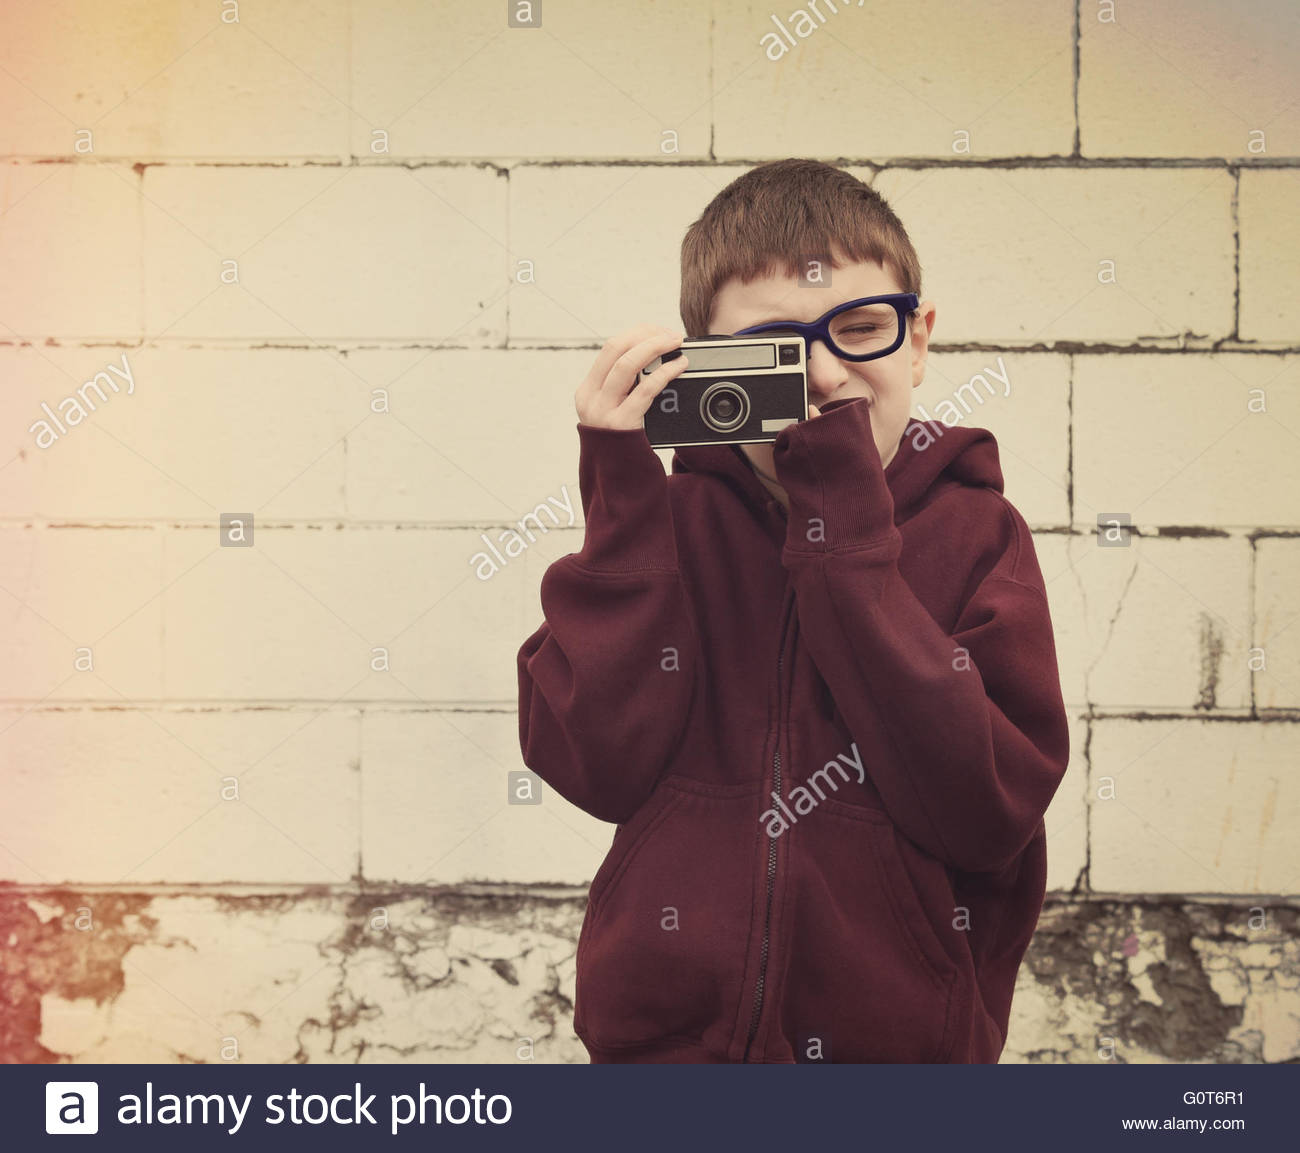 A young child is taking a photograph with an old vintage camera against a brick wall for a retro technology or image - Stock Image